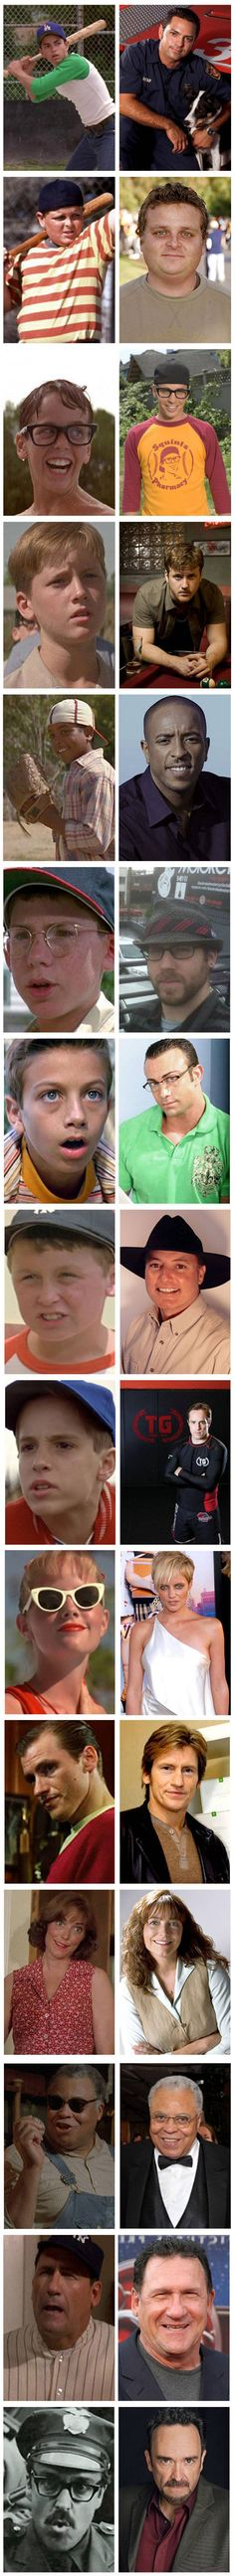 The Sandlot Then and Now